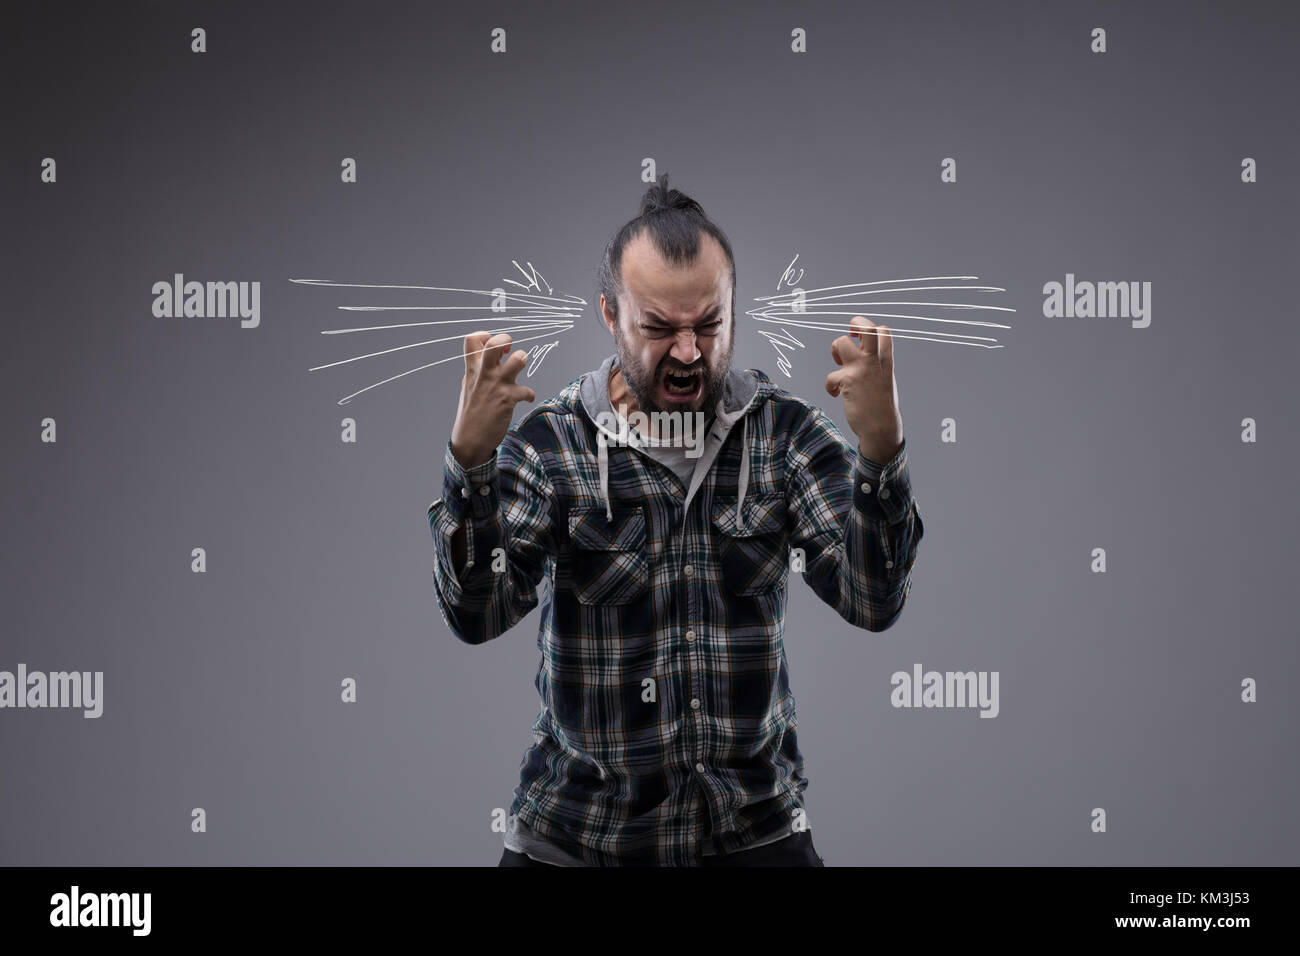 Angry man screaming and throwing a temper tantrum with clenched fists and hand drawn acoustic or noise icons on - Stock Image